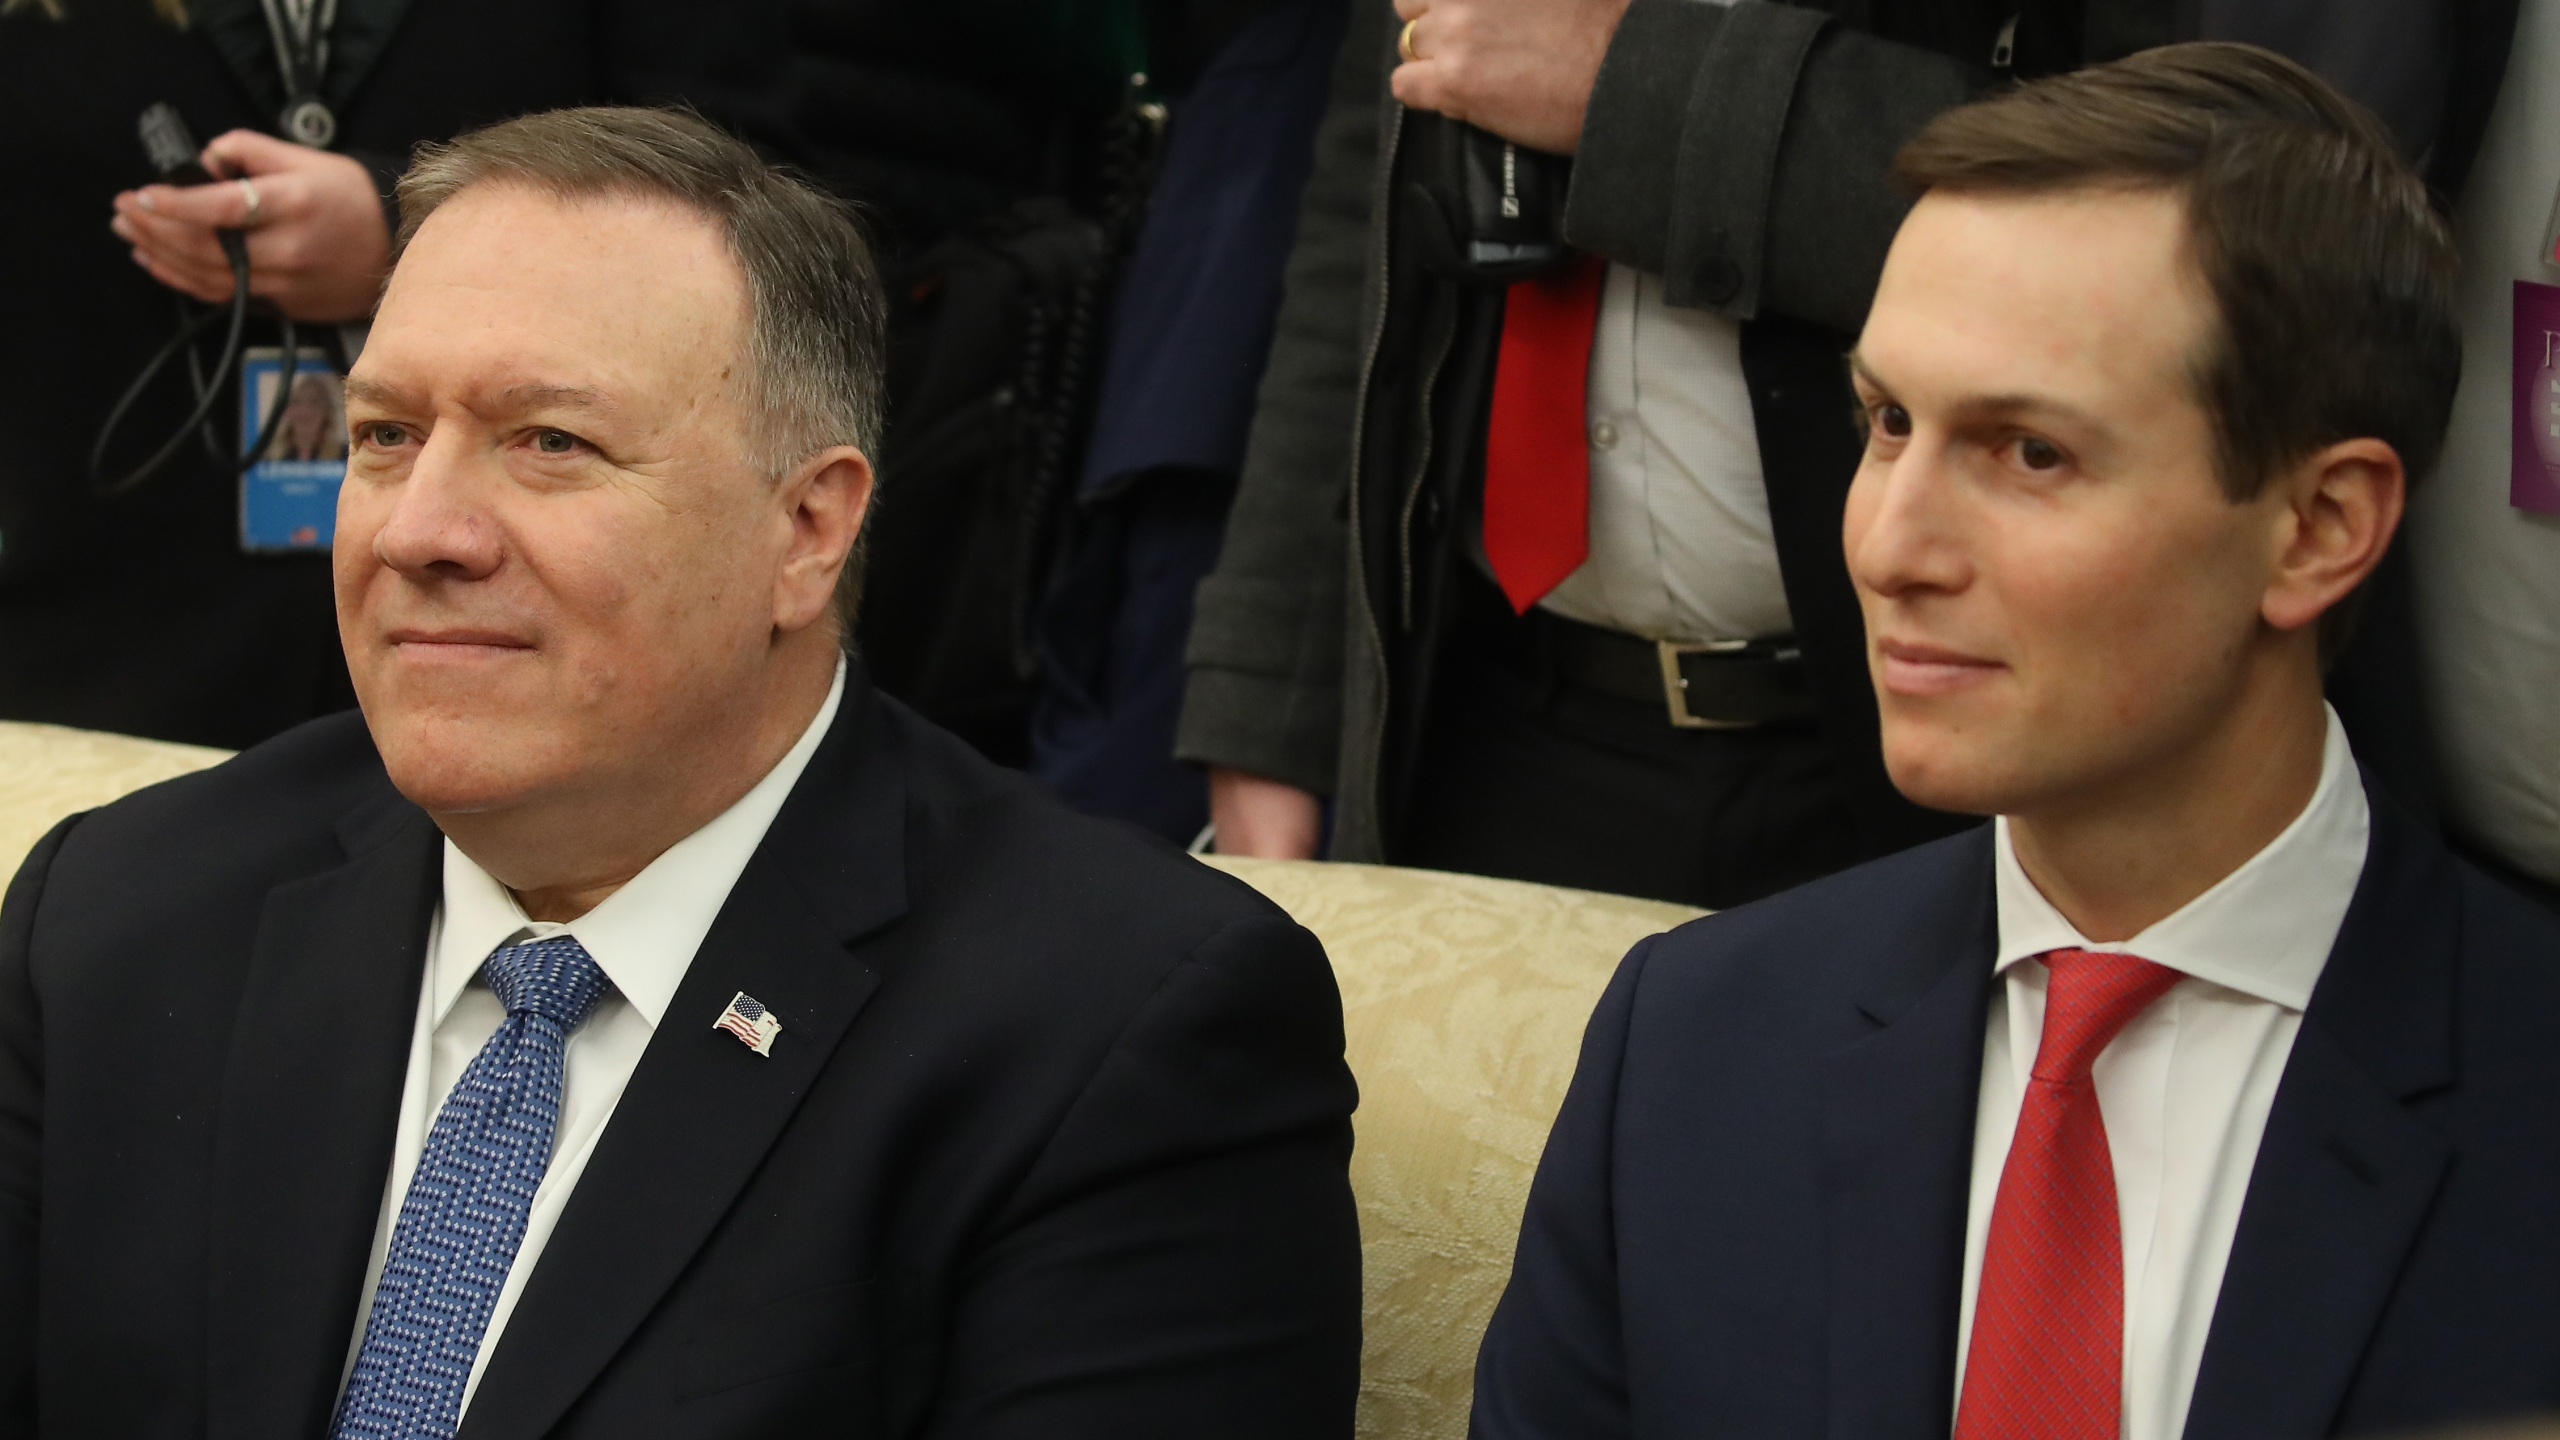 Secretary of State Mike Pompeo (L) and Senior White House Advisor Jared Kushner attend a meeting in the Oval Office with U.S. President Donald Trump andIsraeli Prime Minister Benjamin Netanyahu, at the White House on Jan. 27, 2020, in Washington, D.C. (Mark Wilson/Getty Images)